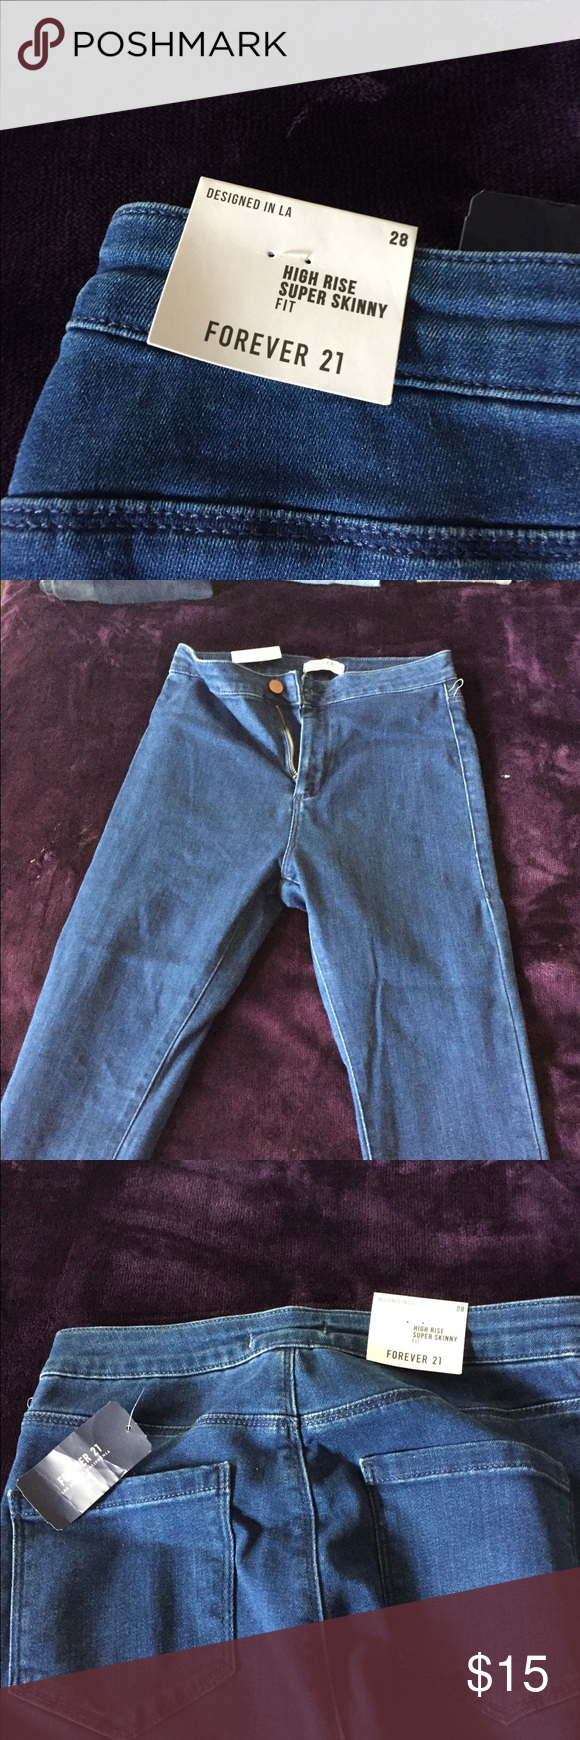 Forever 21 blue jeans New with tags- forever 21 high rise super skinny jeans, size 28. Super soft jeans Forever 21 Bottoms Jeans